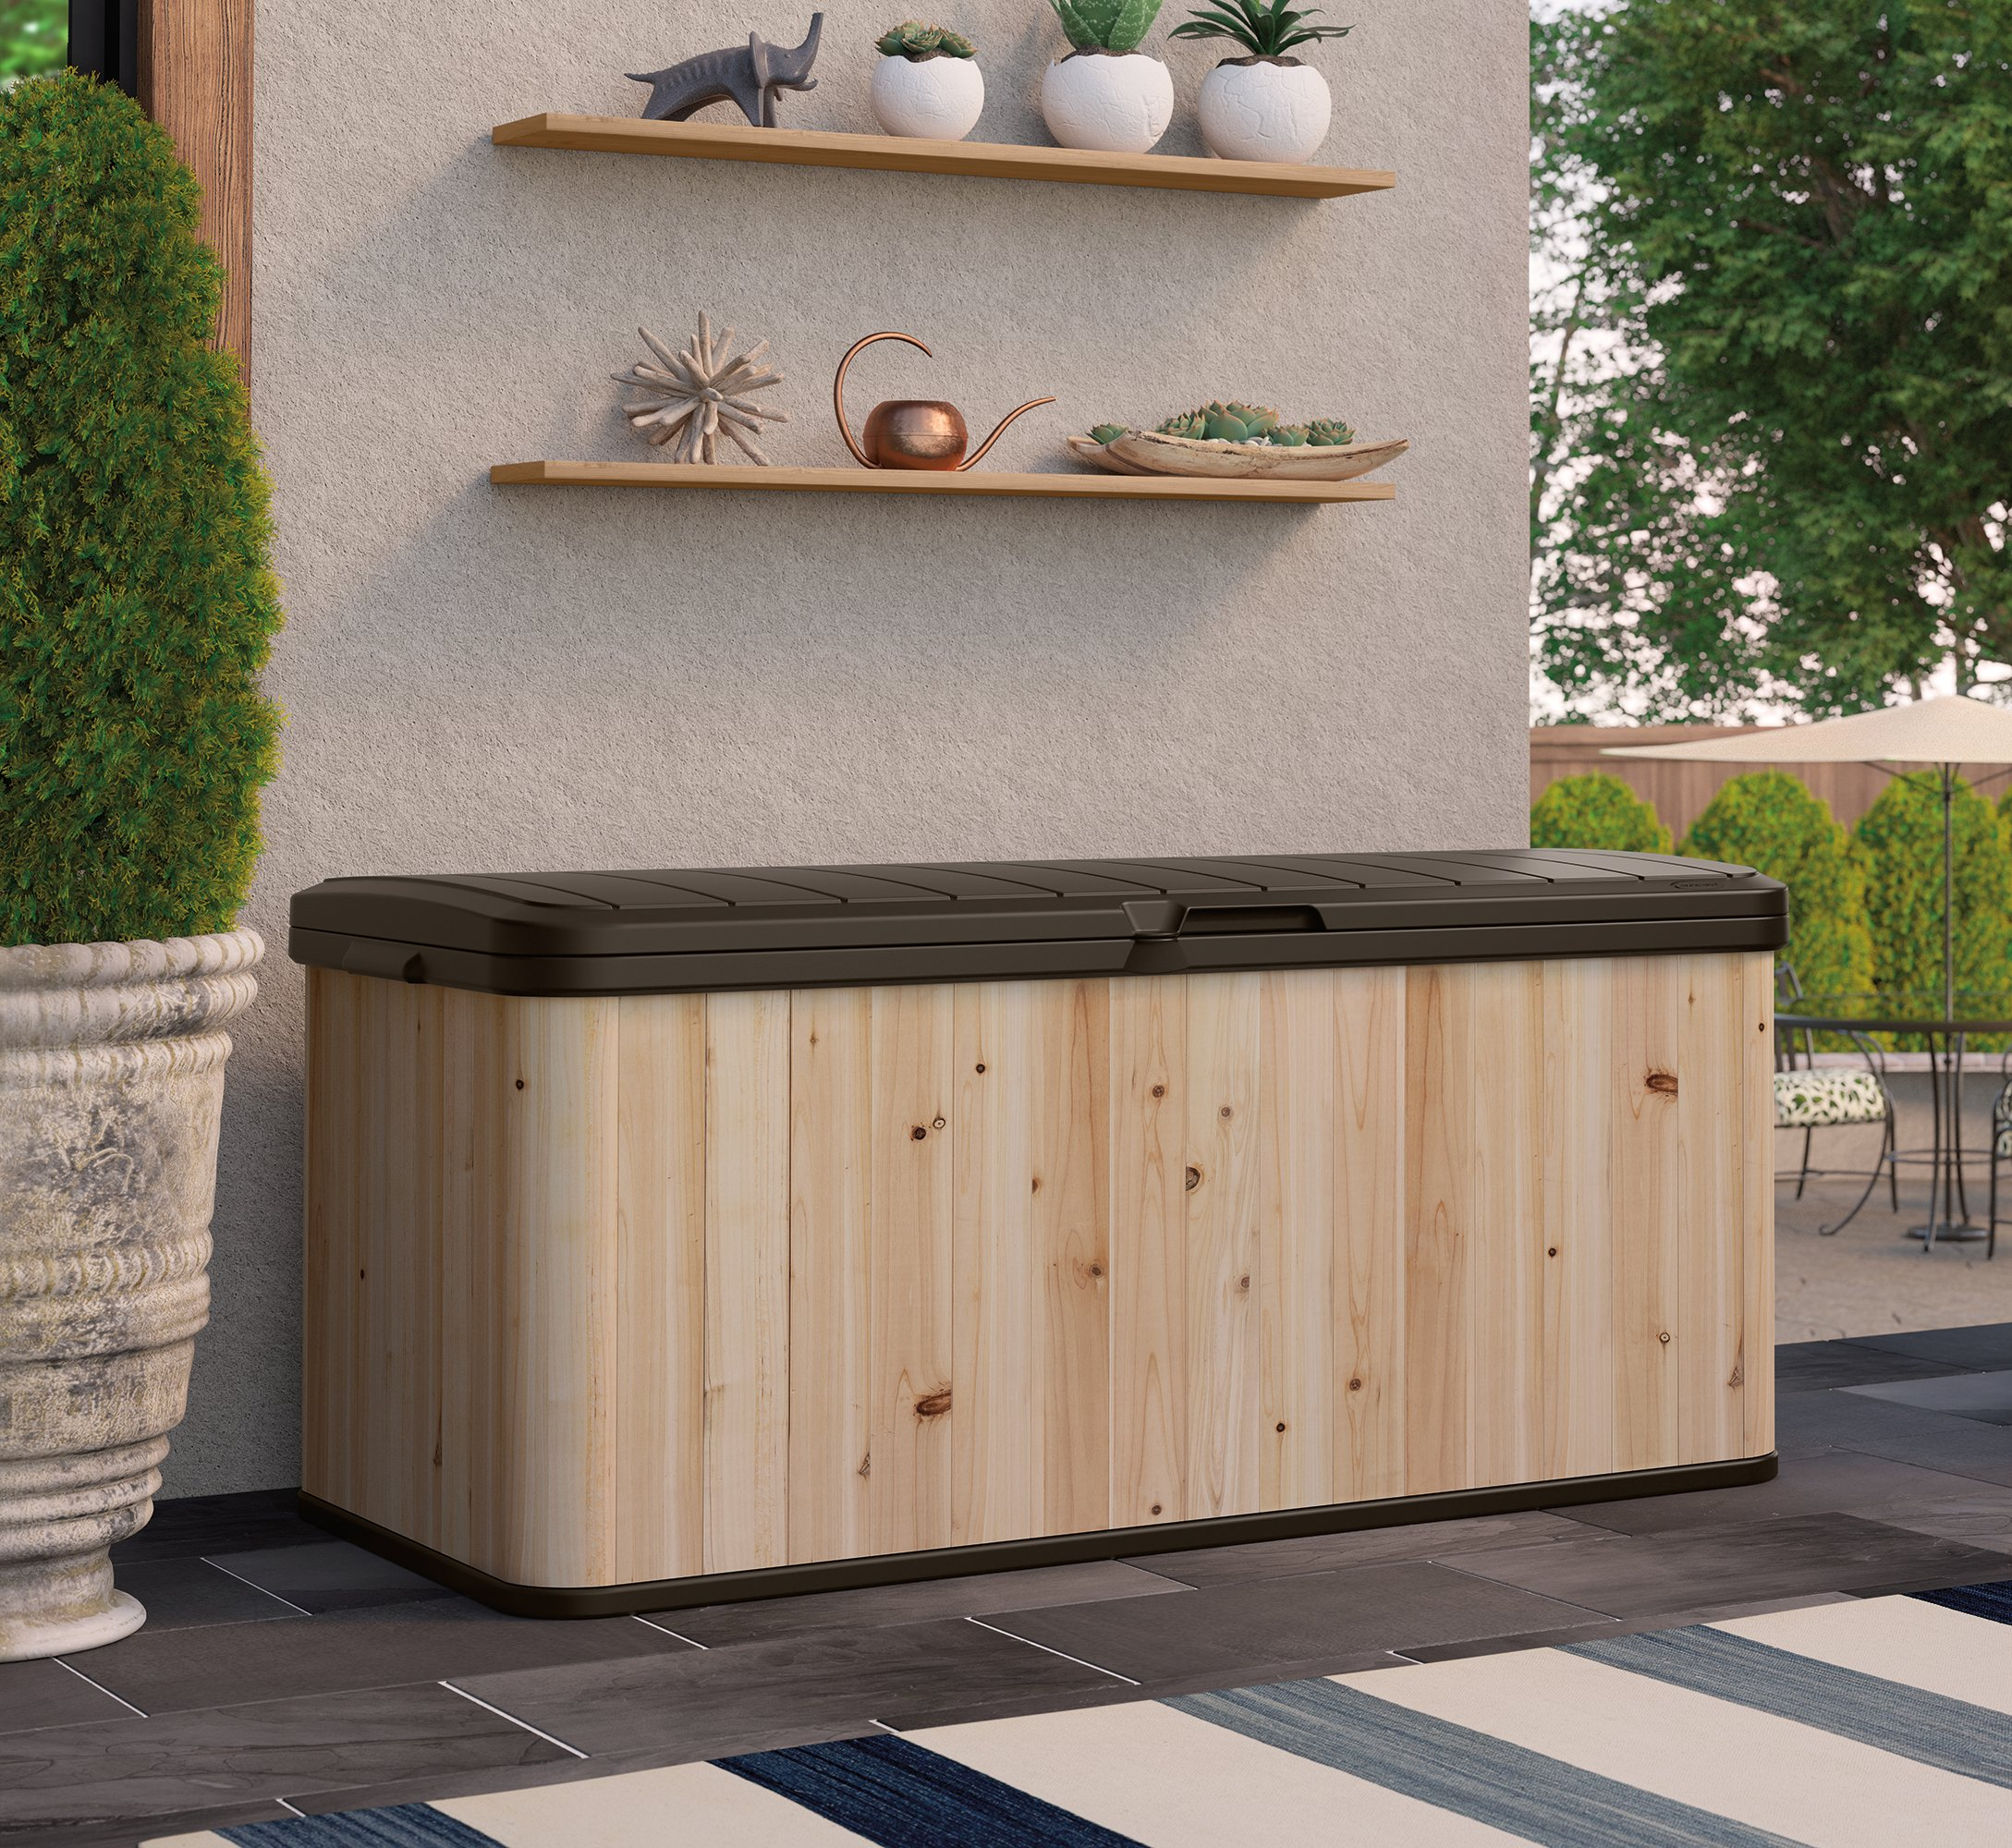 Suncast WRDB12000 Wood and Resin Deck Box by Suncast (Image #2)